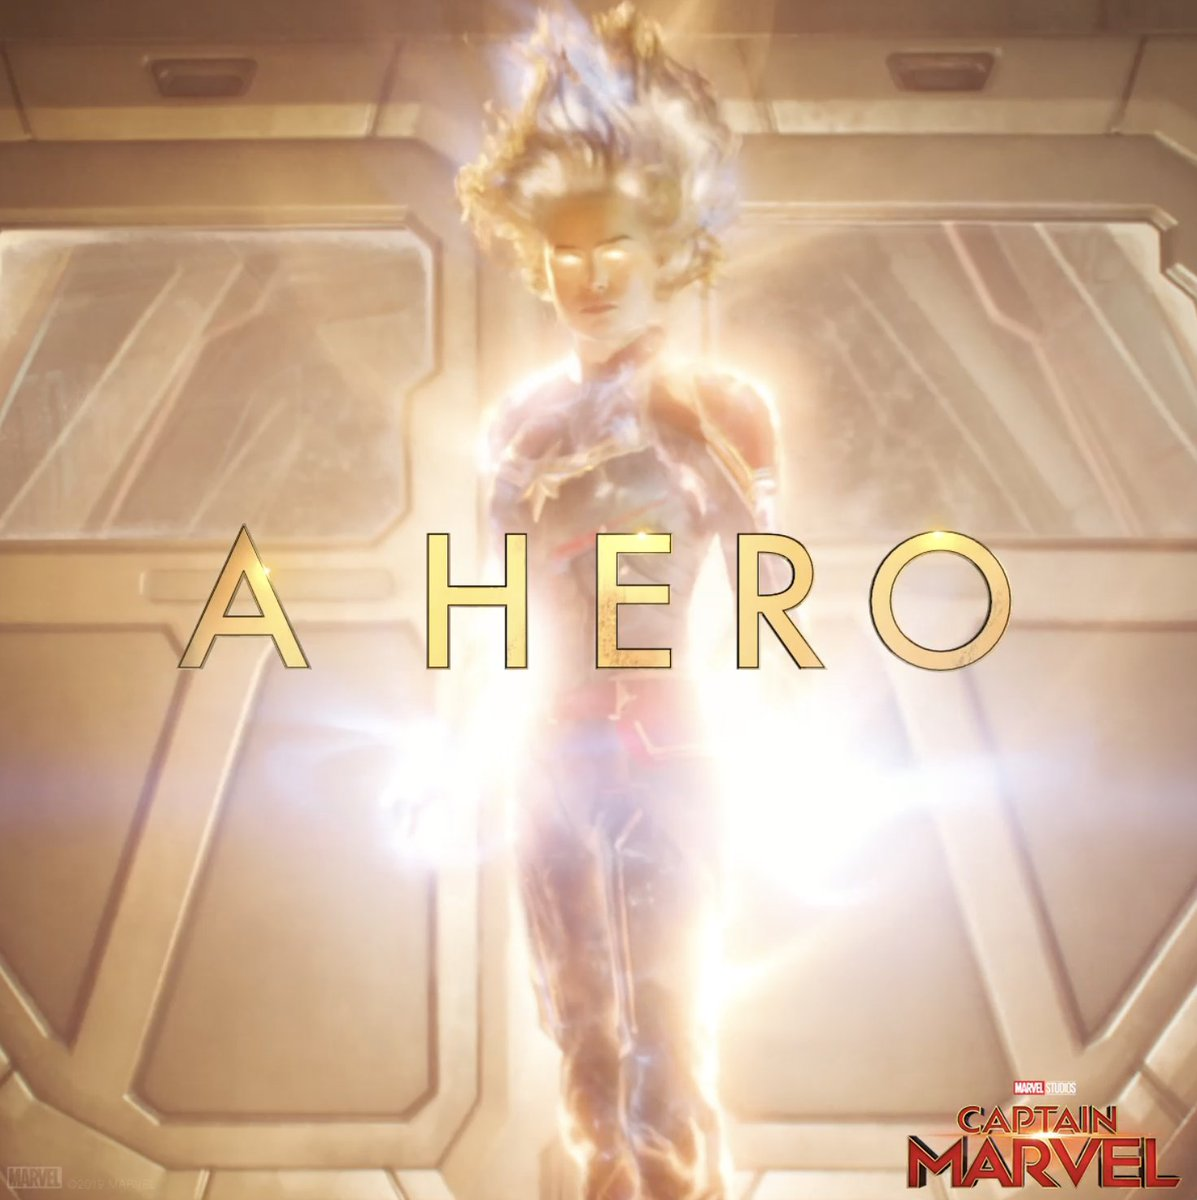 """""""She's just the beginning."""" Marvel Studios' #CaptainMarvel is in theaters March 8! Get tickets now: http://www.Fandango.com/CaptainMarvel"""